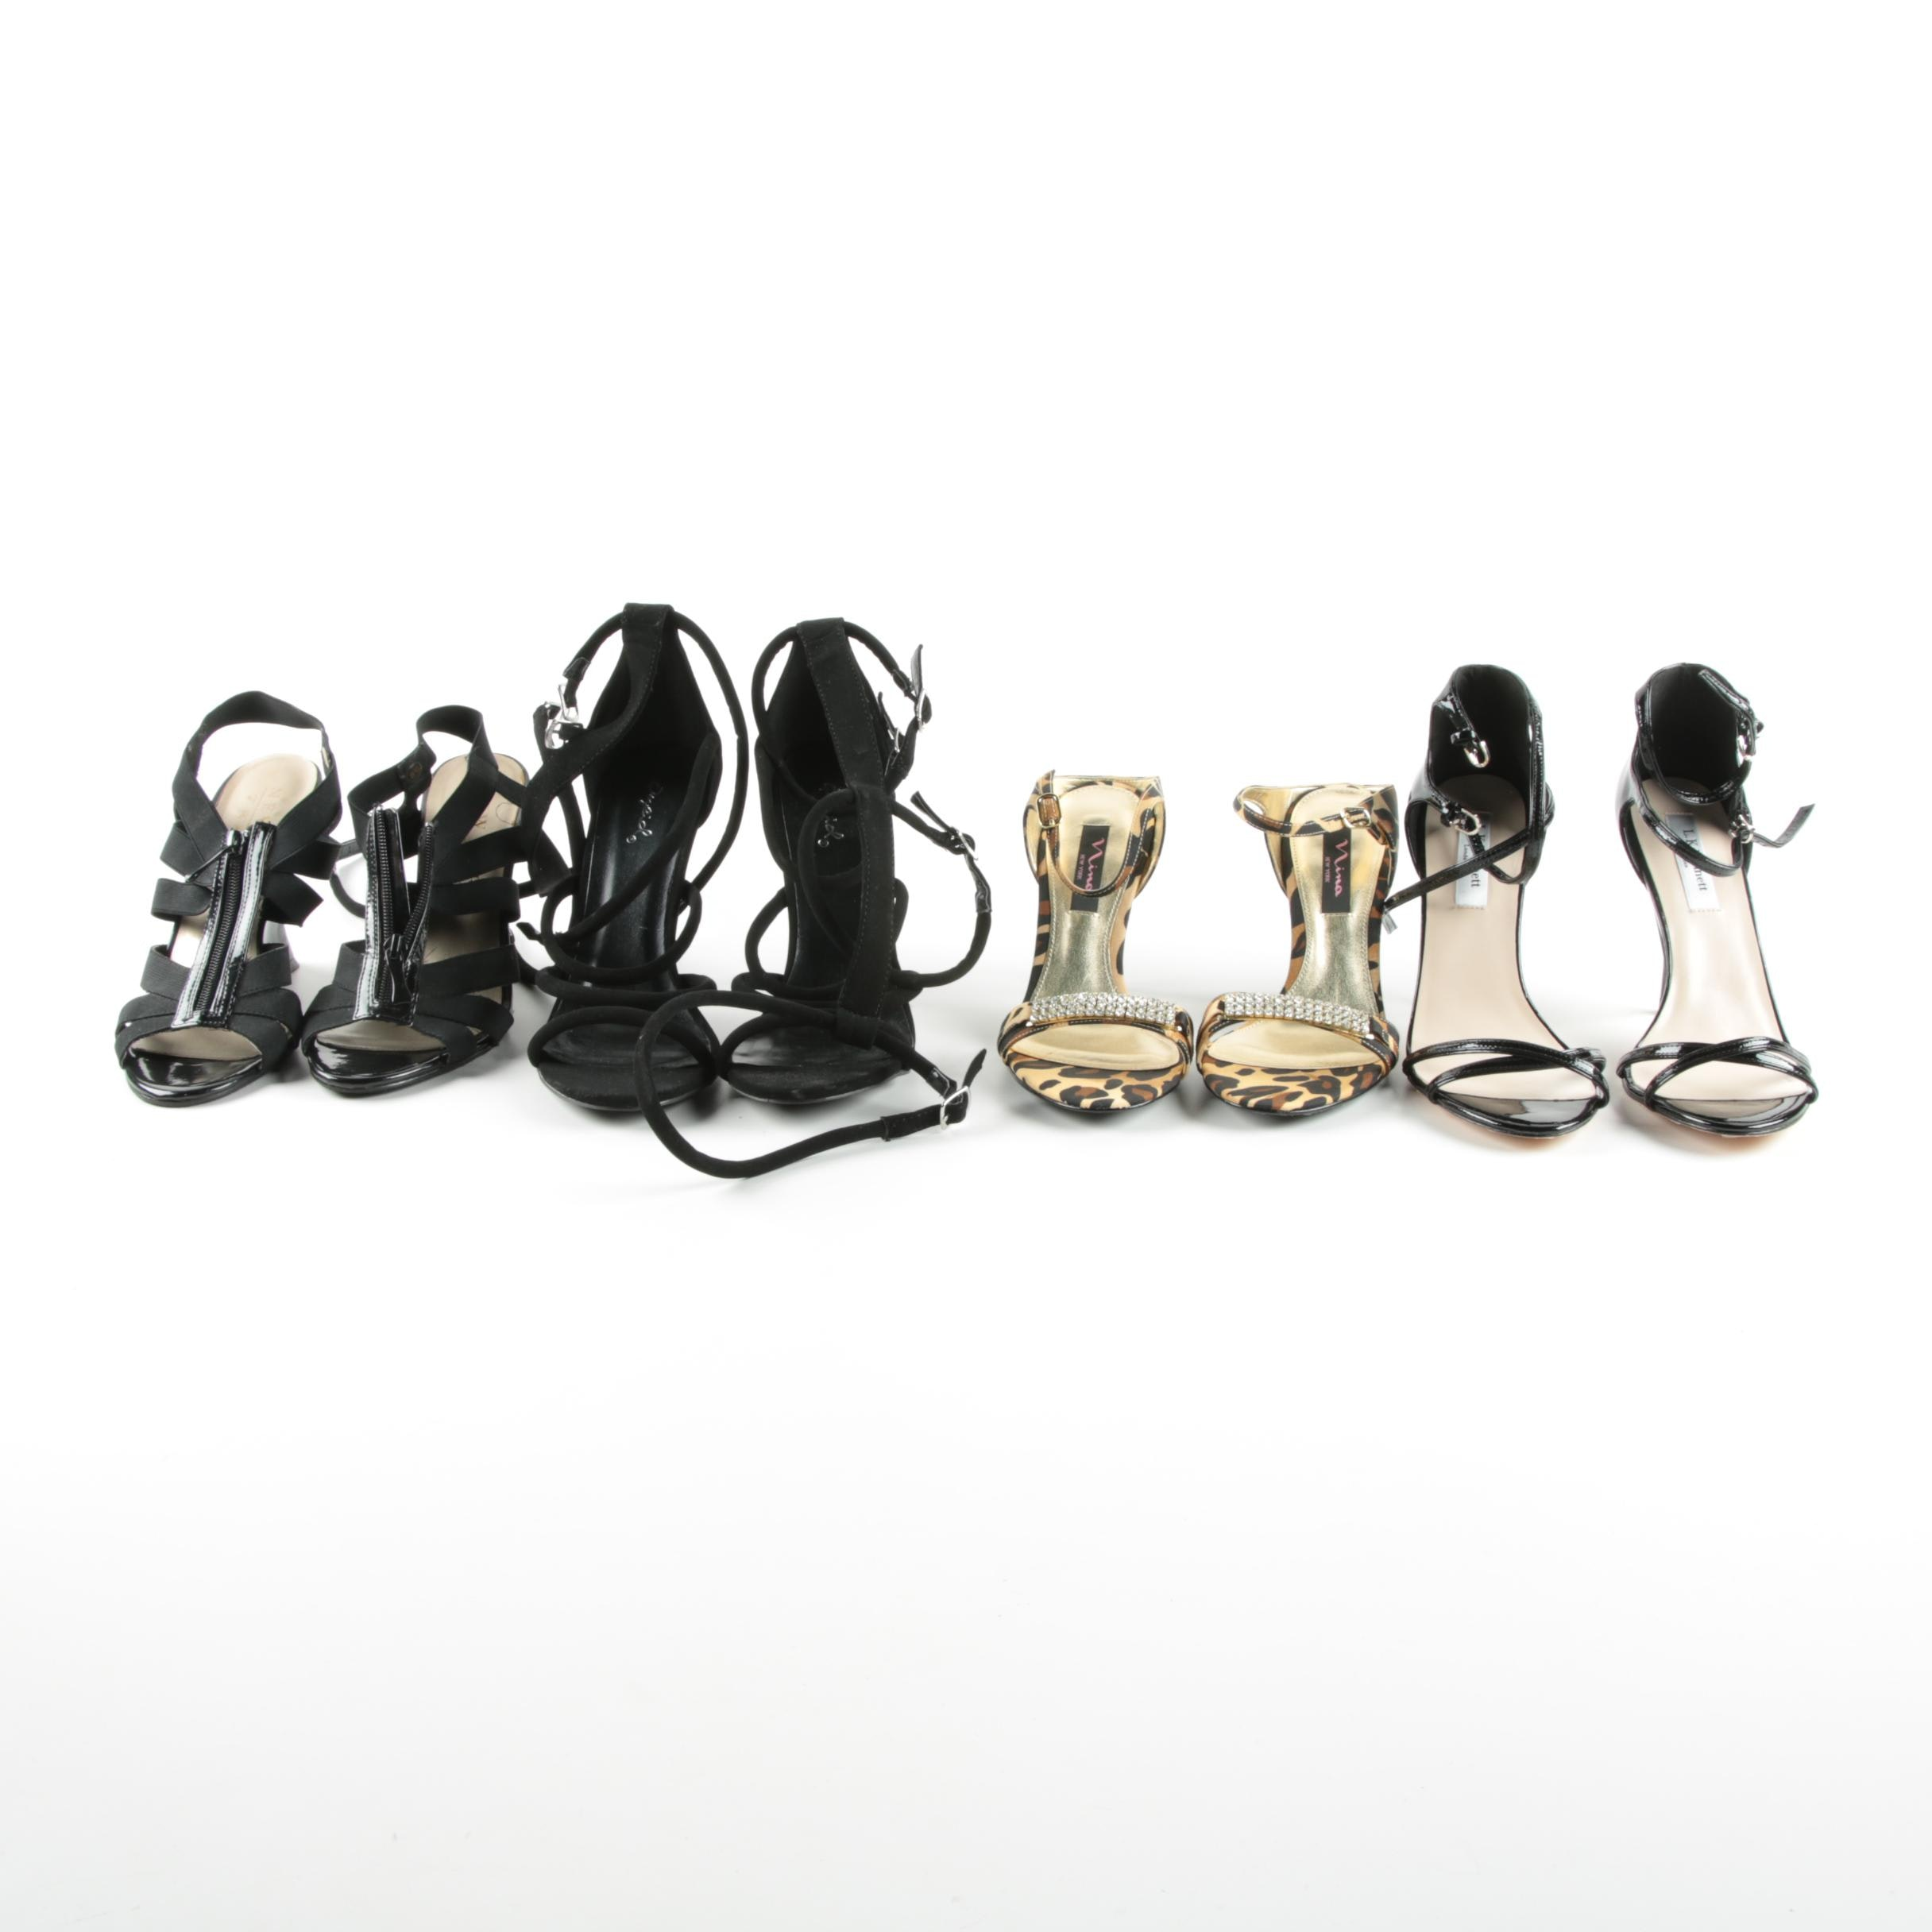 Women's High Heeled Sandals, Including Nina New York